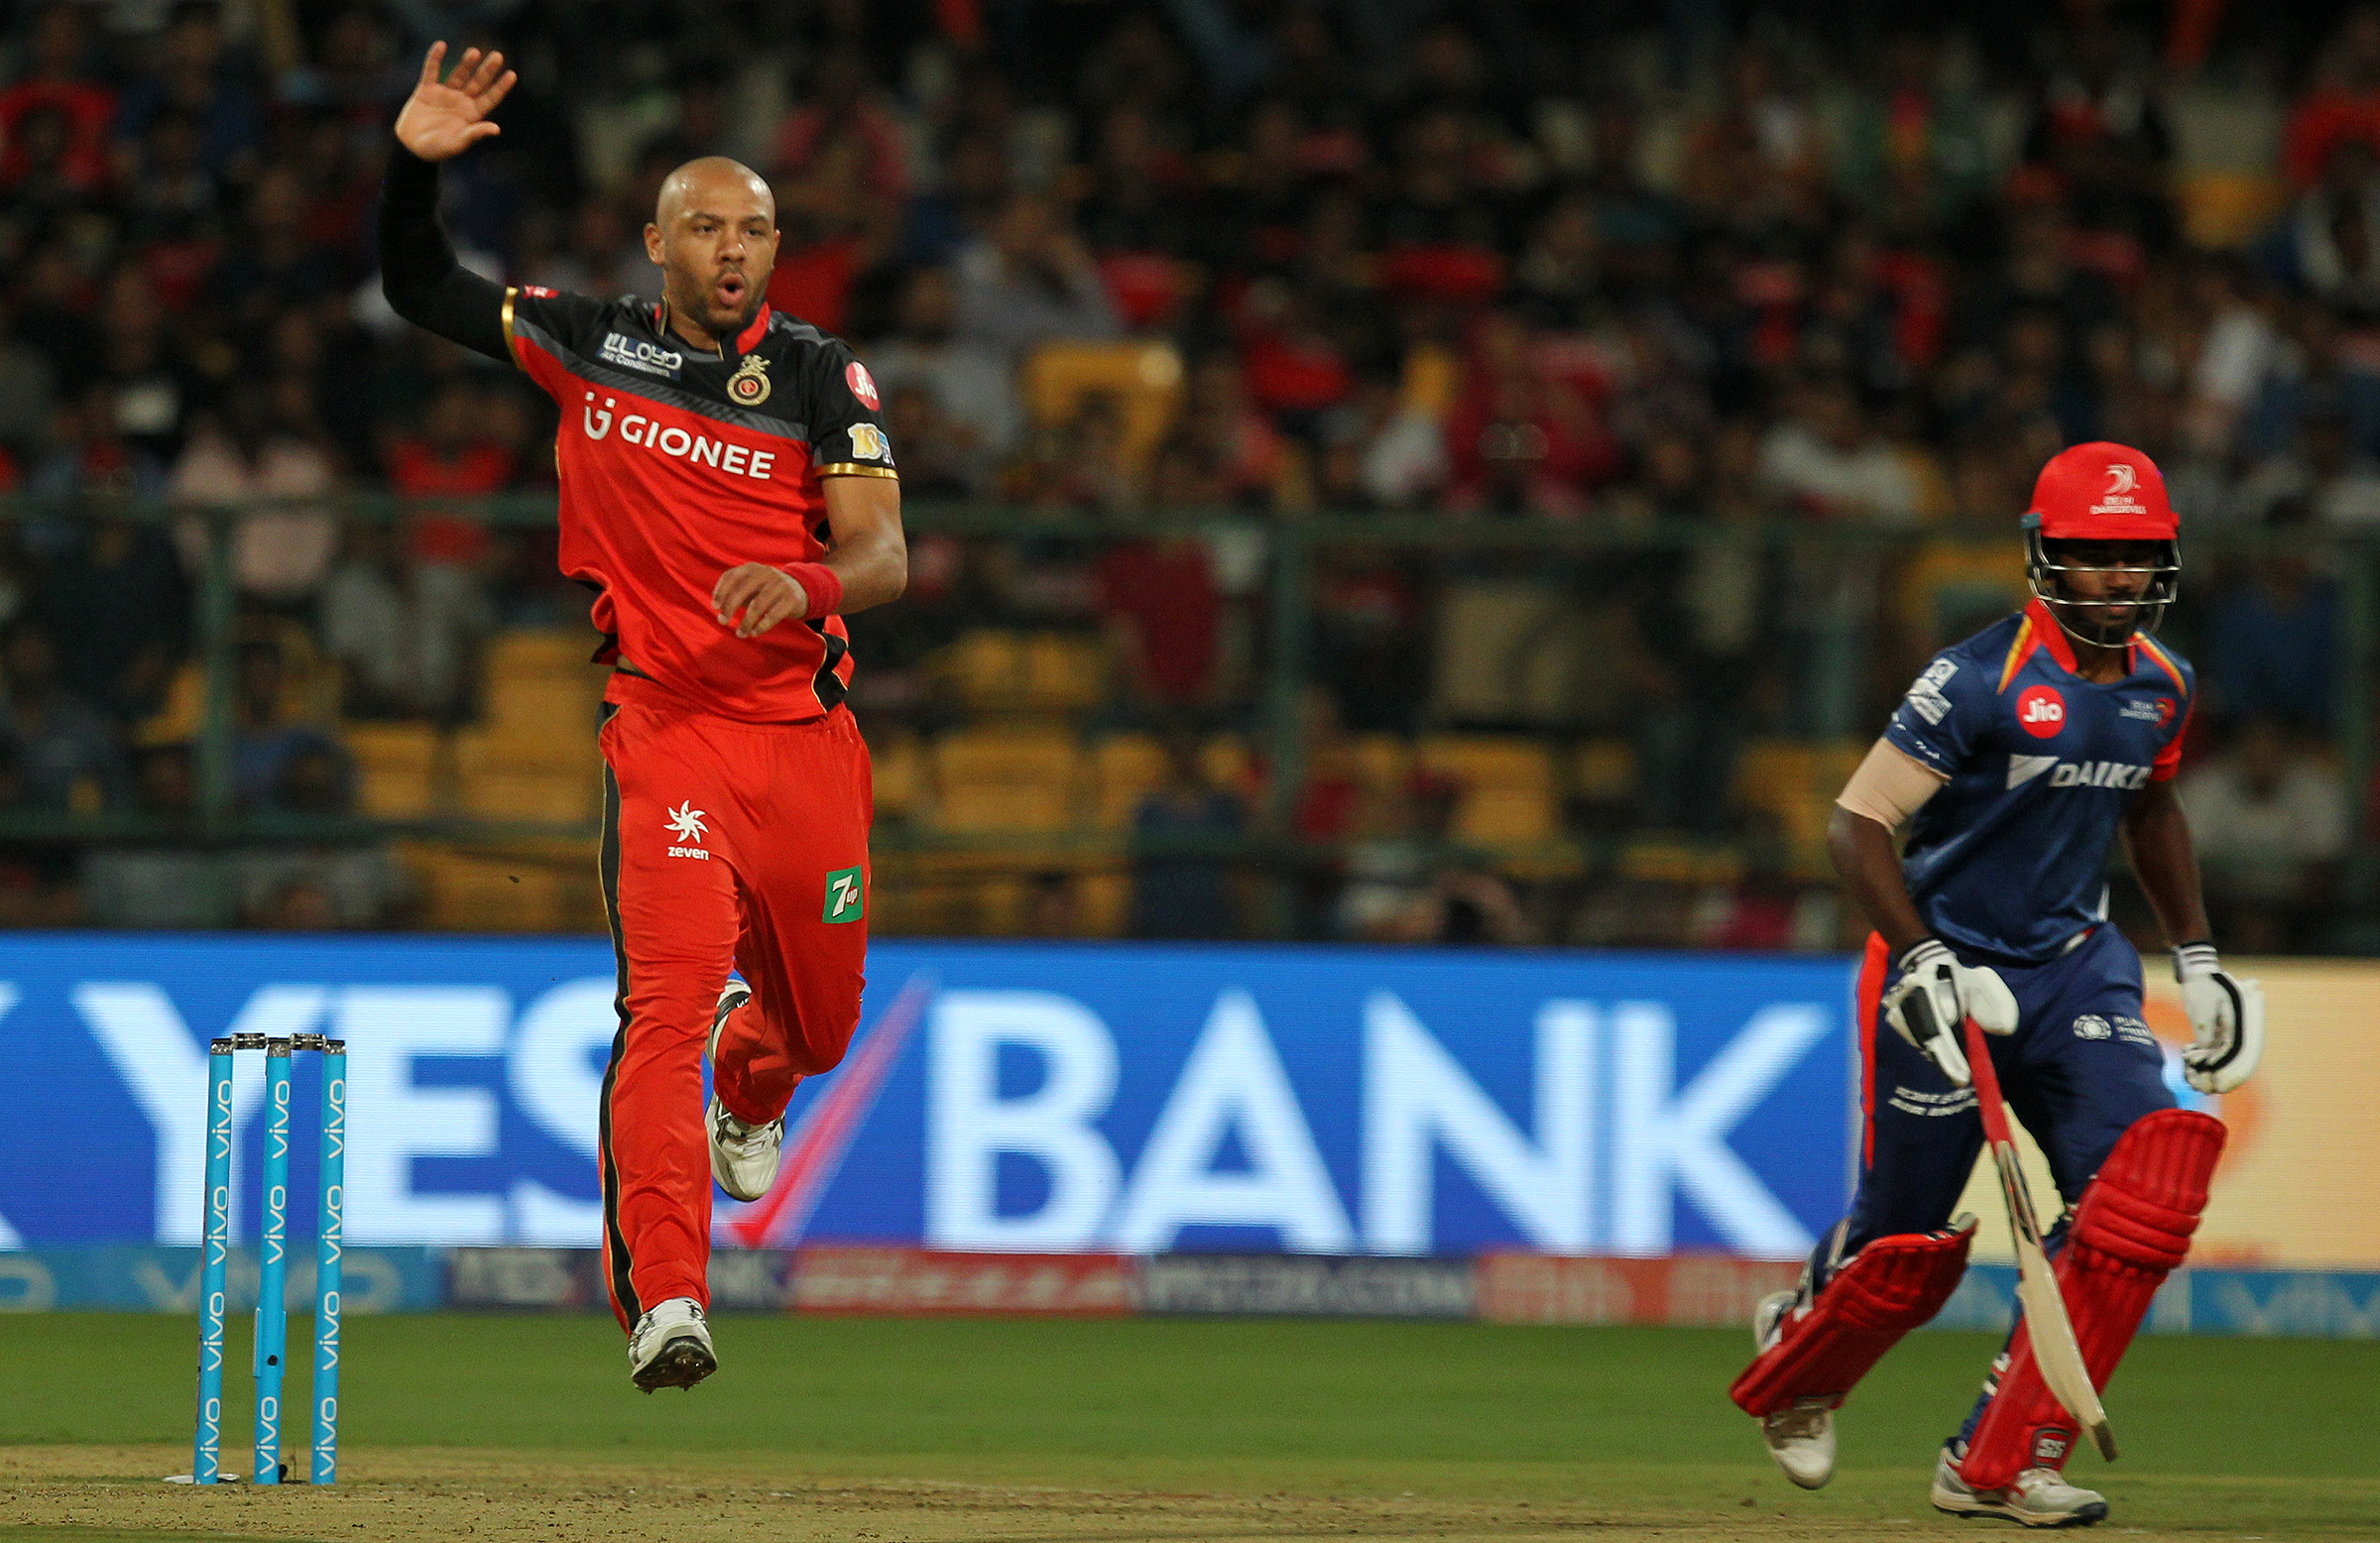 Mills was a big-money purchase for RCB in the recent auction // BCCI